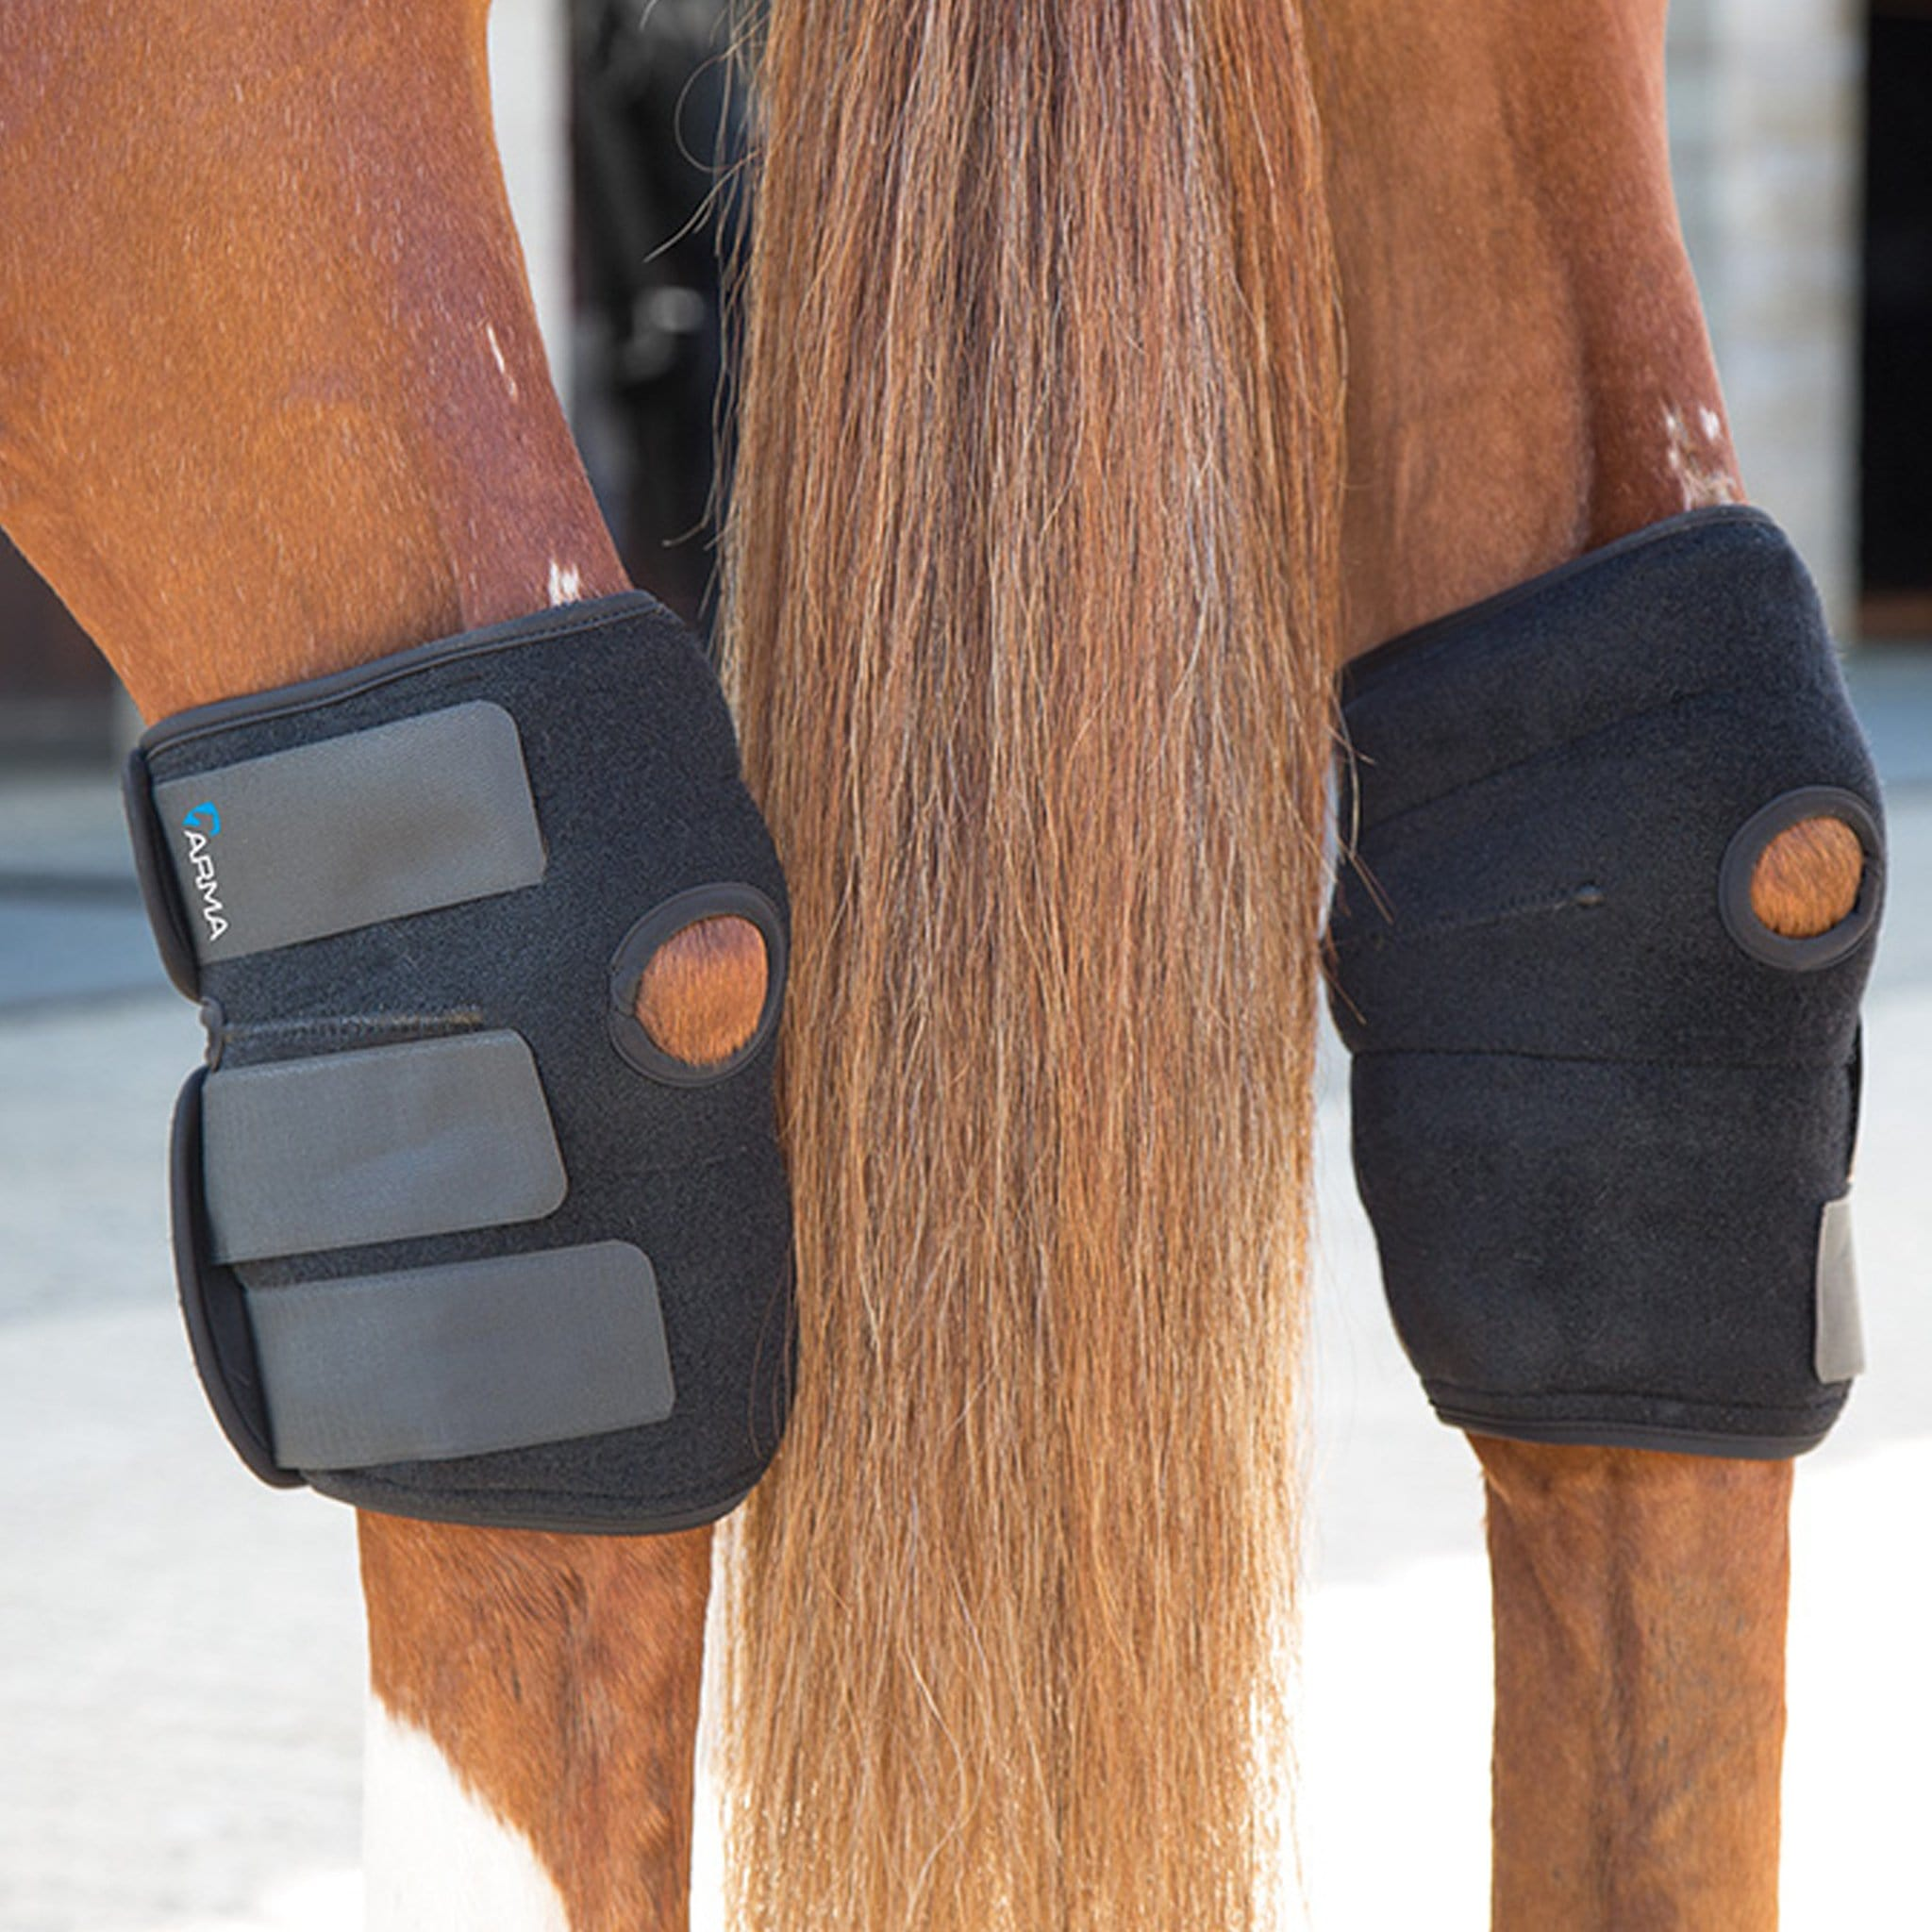 Shires ARMA Hot/Cold Joint Relief Boots Hocks 2005.